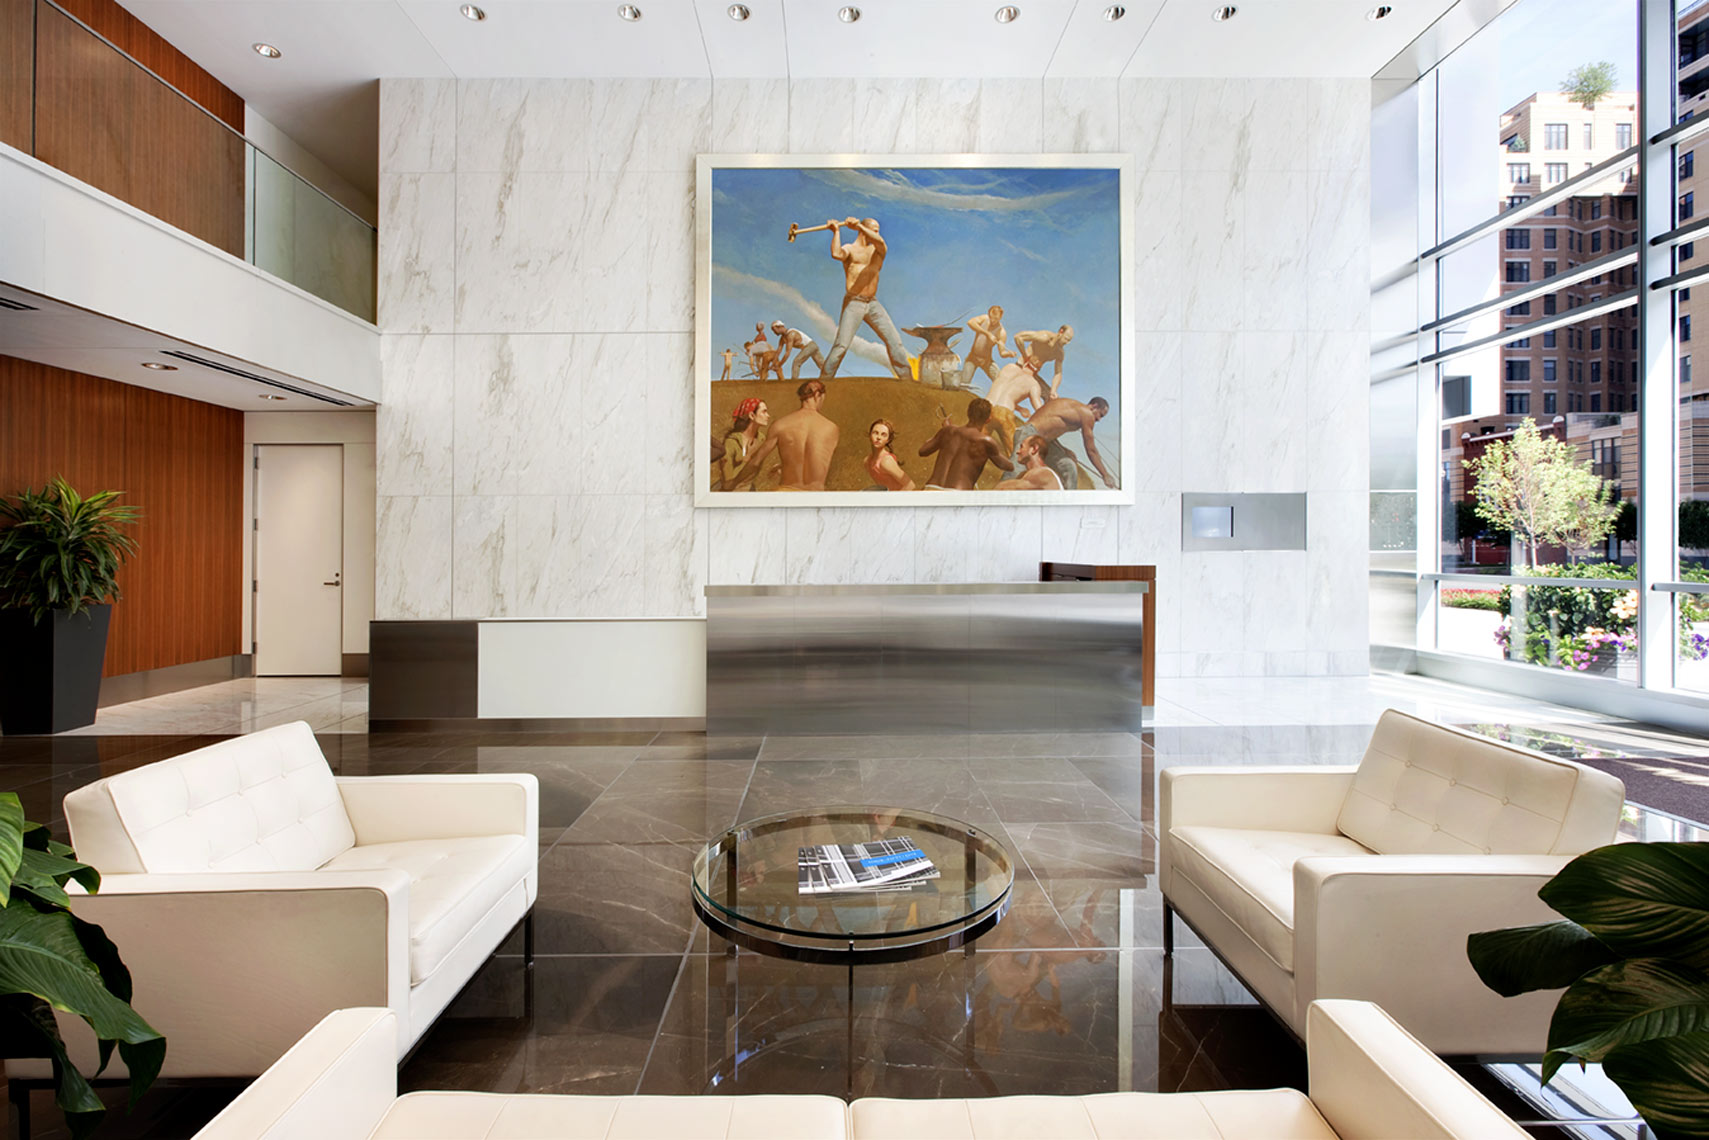 architectural photograph of a condo building lobby by Dan Poyourow